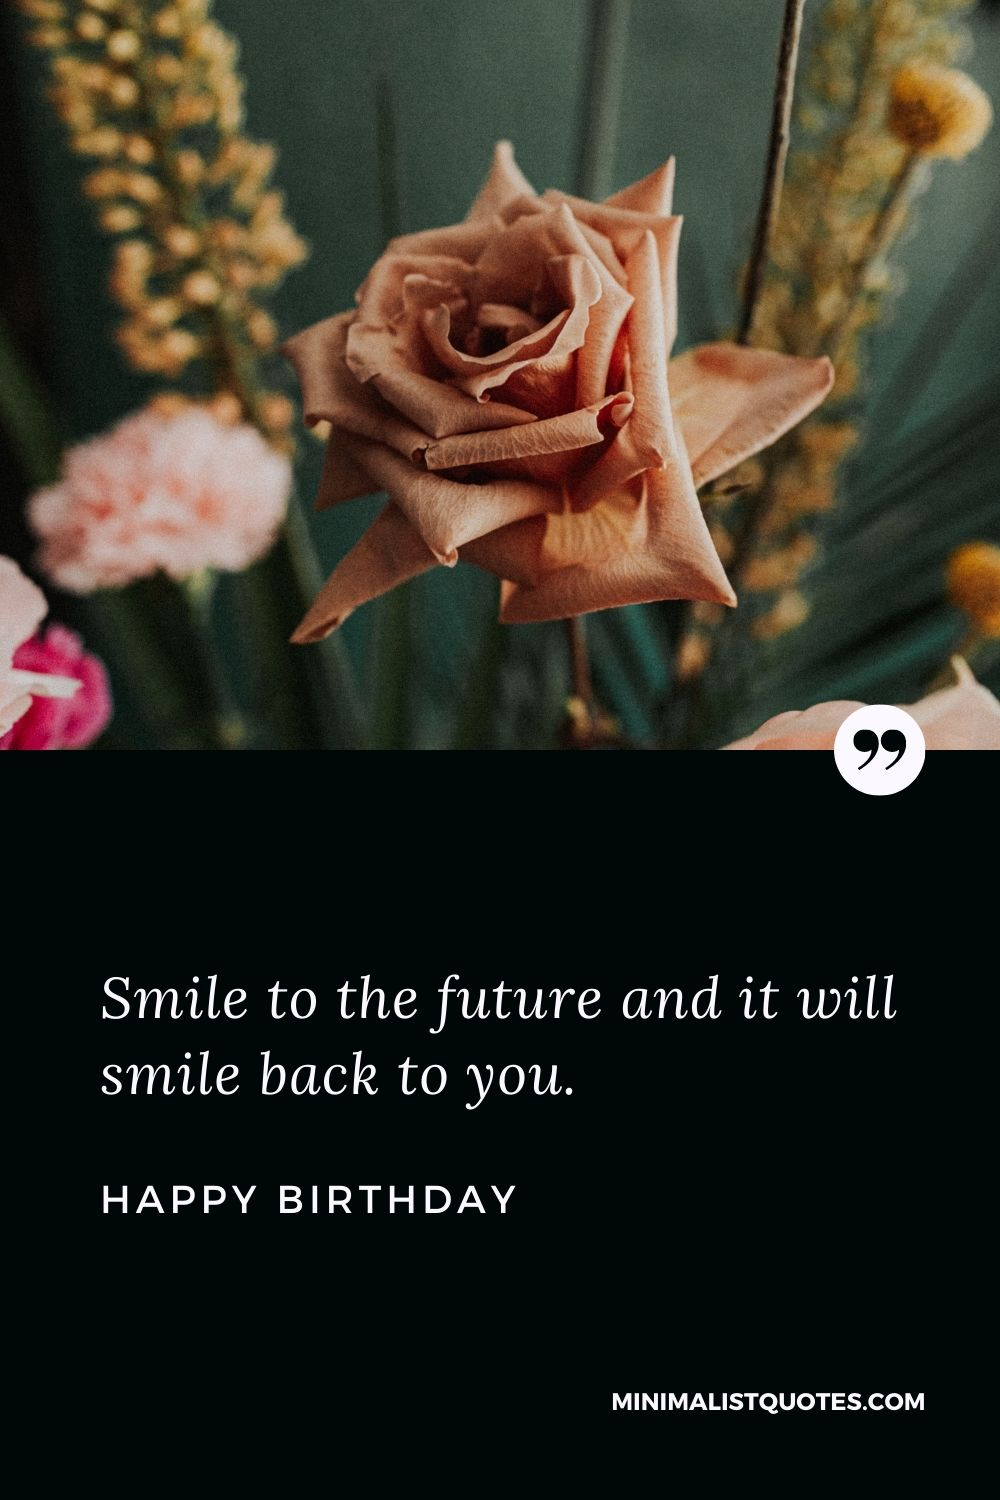 Birthday Wish & Message With Image: Smile to the future and it will smile back to you. Happy Birthday!